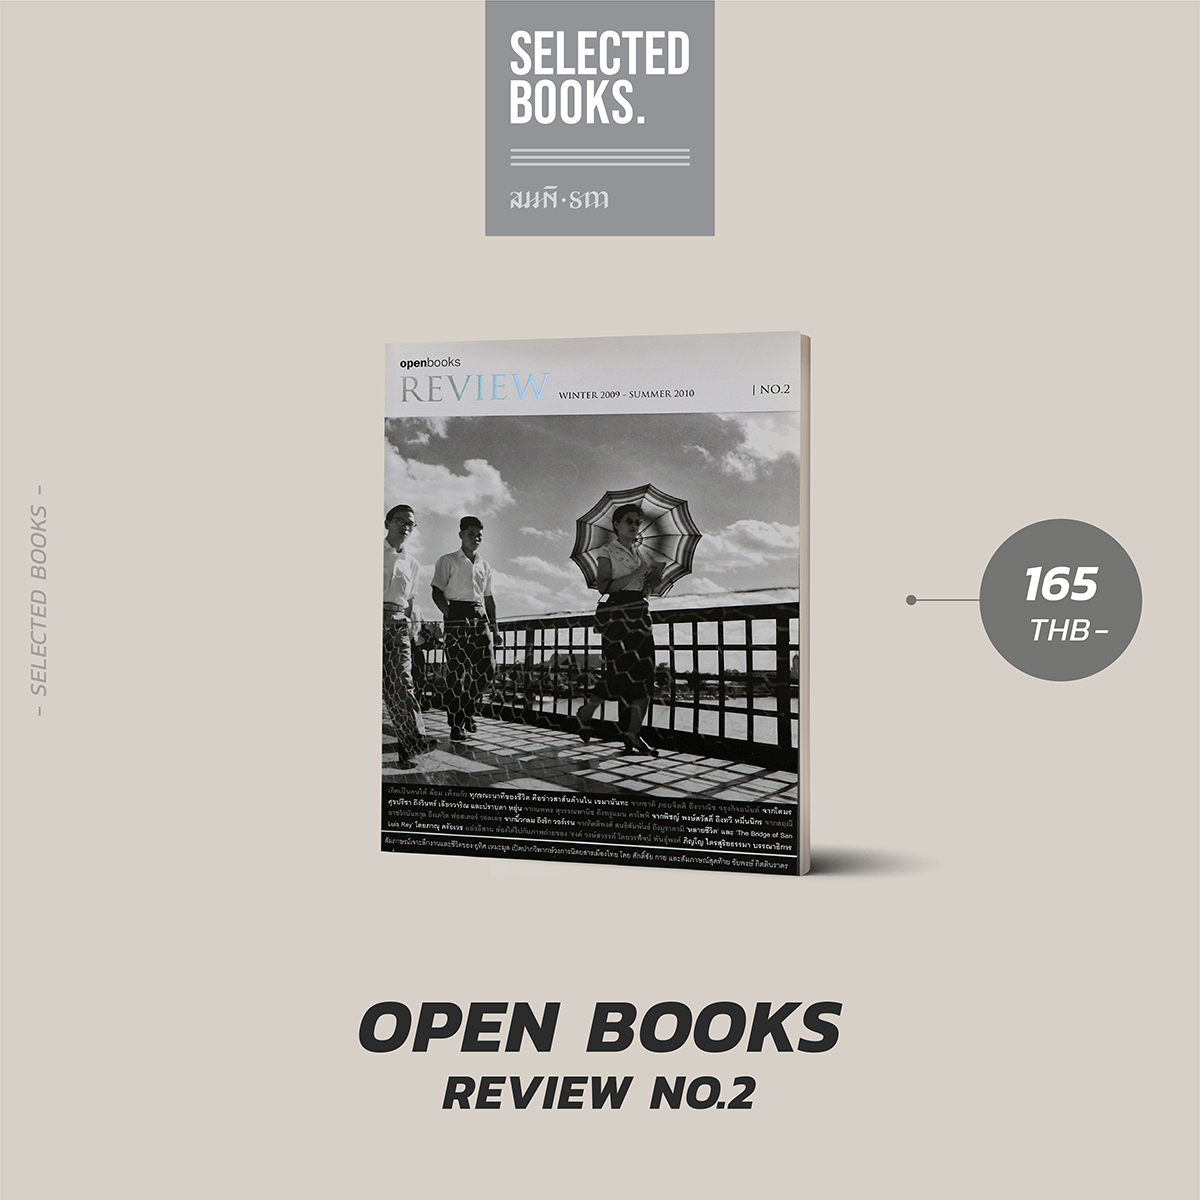 Open Books Review No.2